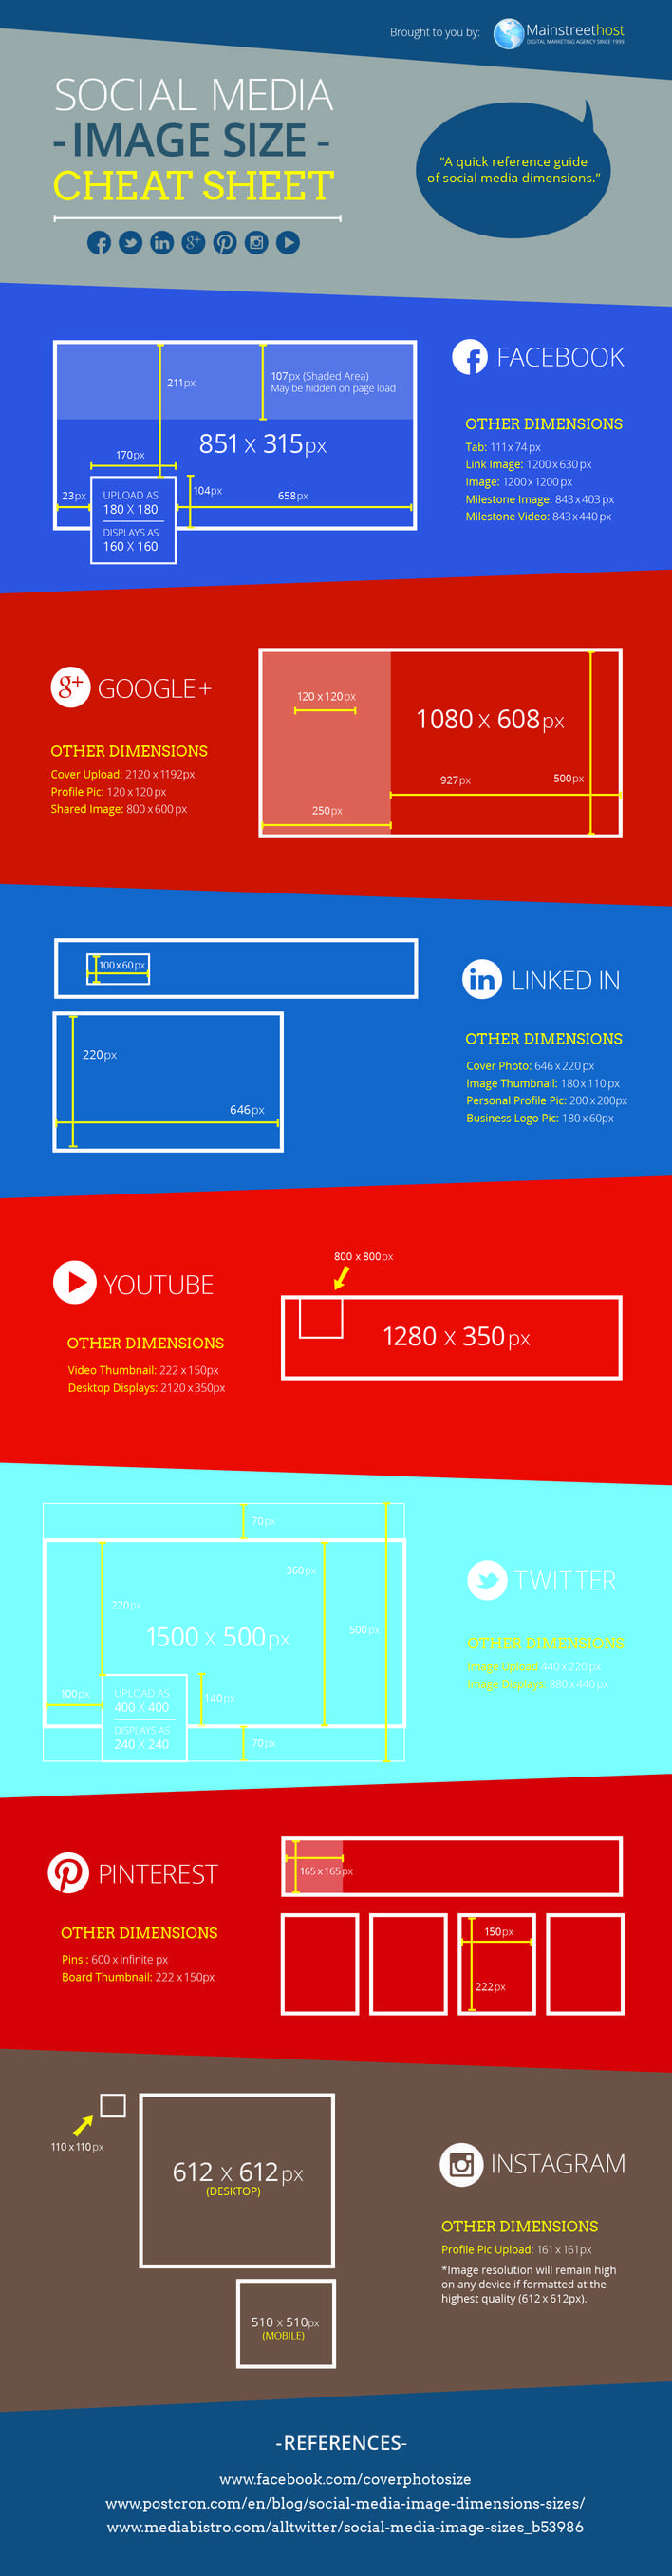 Social Media Image Size Cheat Sheet #infographic